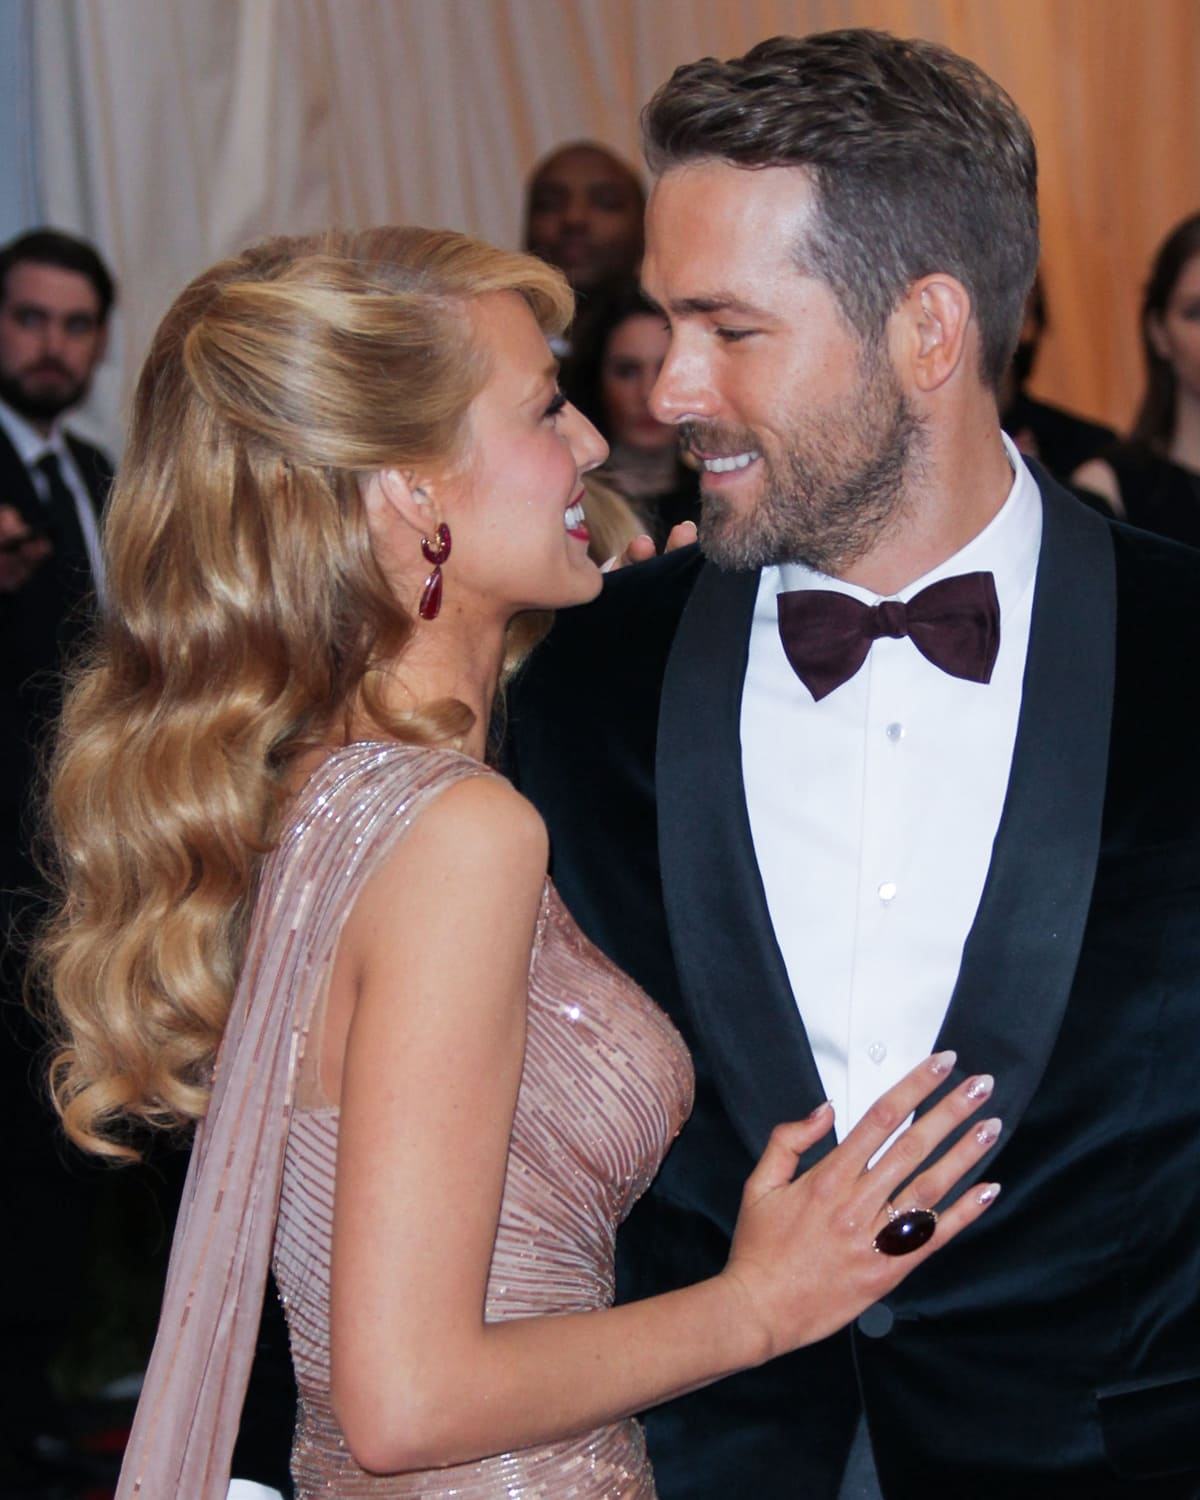 Ryan Reynolds is eleven years older than his wife Blake Lively